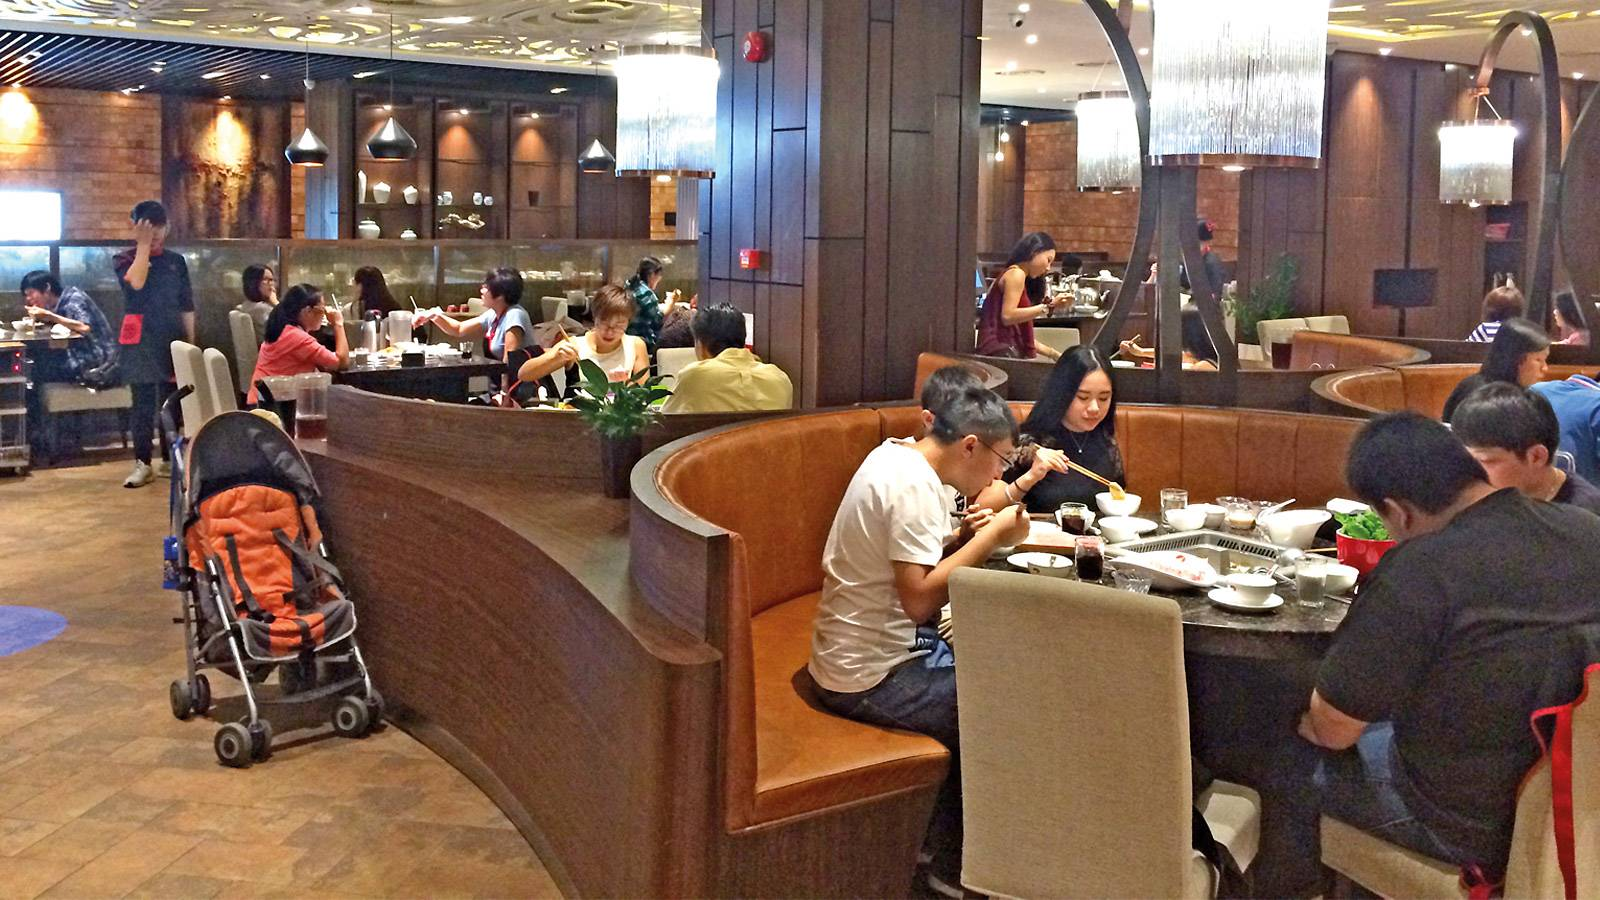 Restaurant-Reviews-hai-di-lao-hot-pot-2